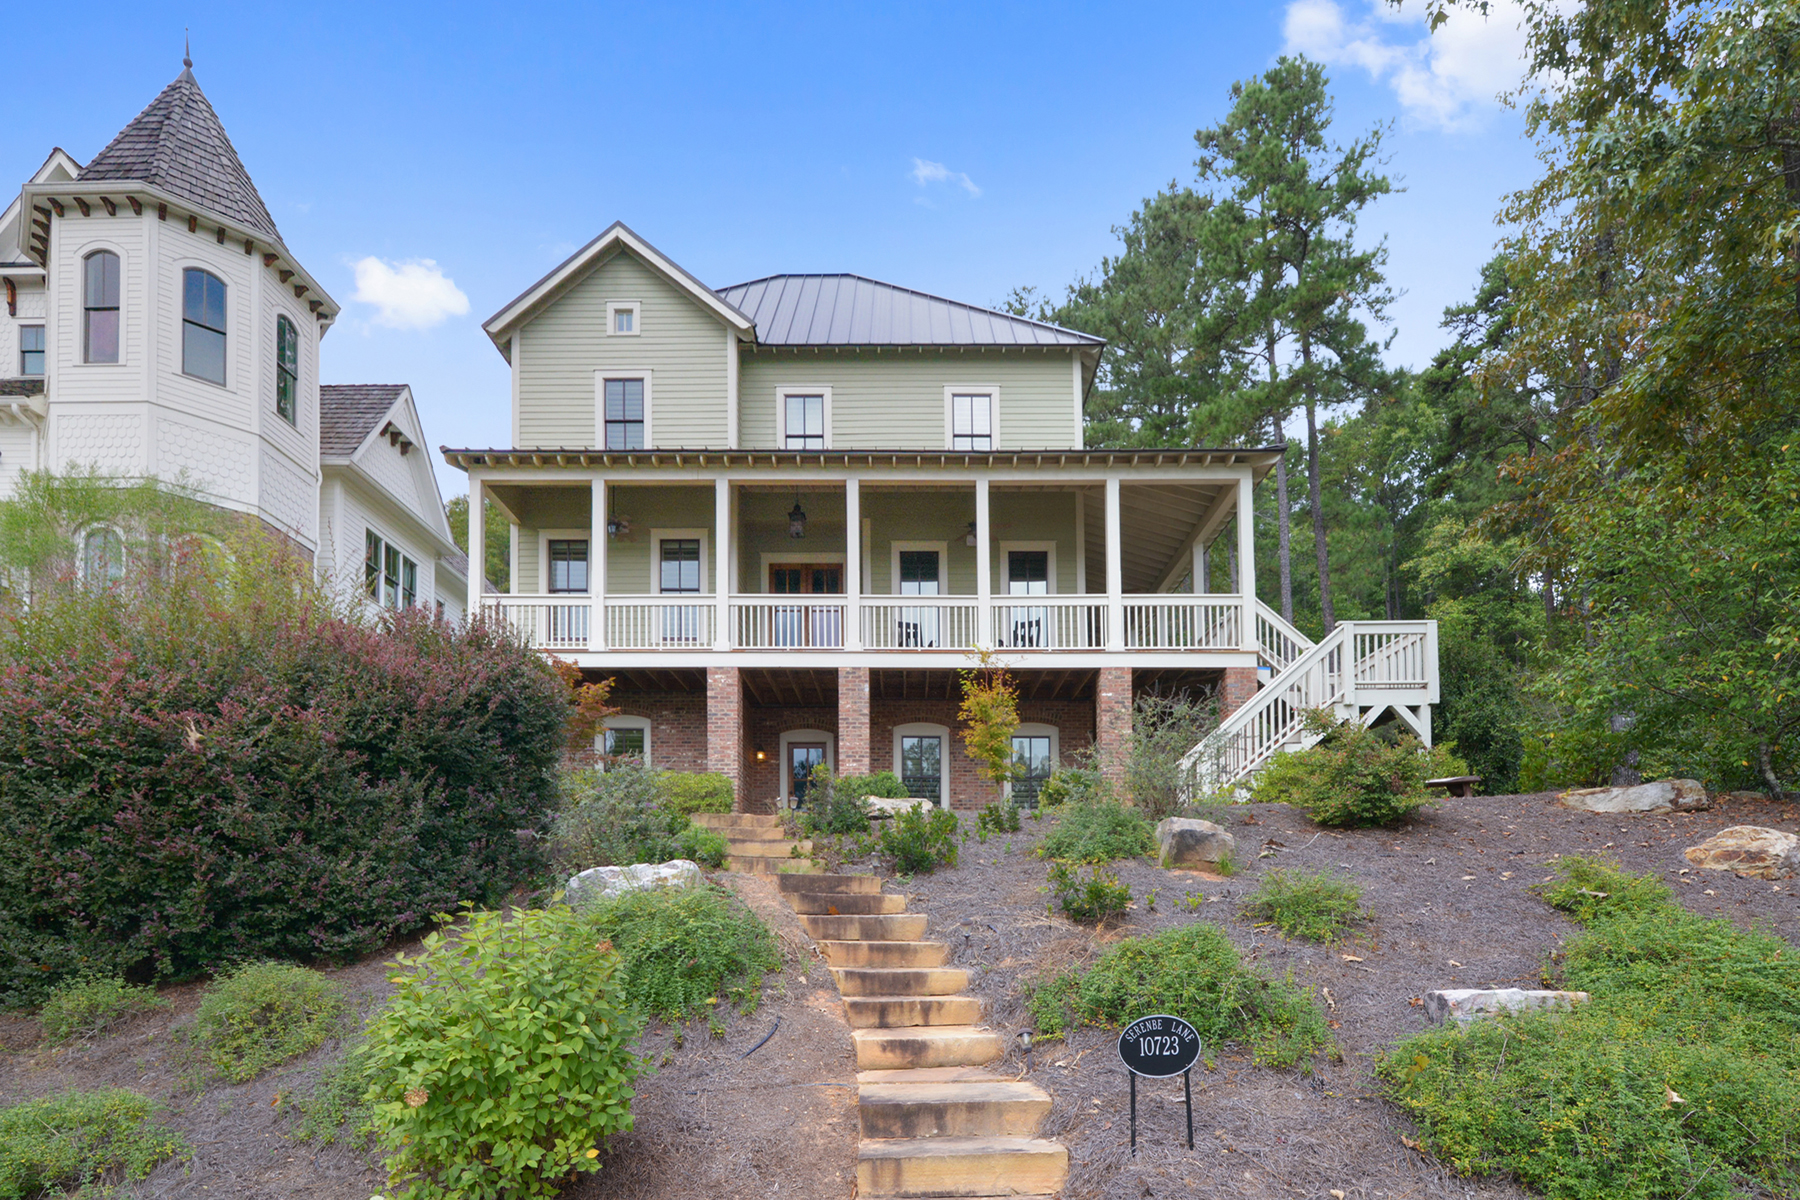 Additional photo for property listing at Upscale Serenbe Farmhouse-Style Home 10723 Serenbe Lane Chattahoochee Hills, Georgië 30268 Verenigde Staten